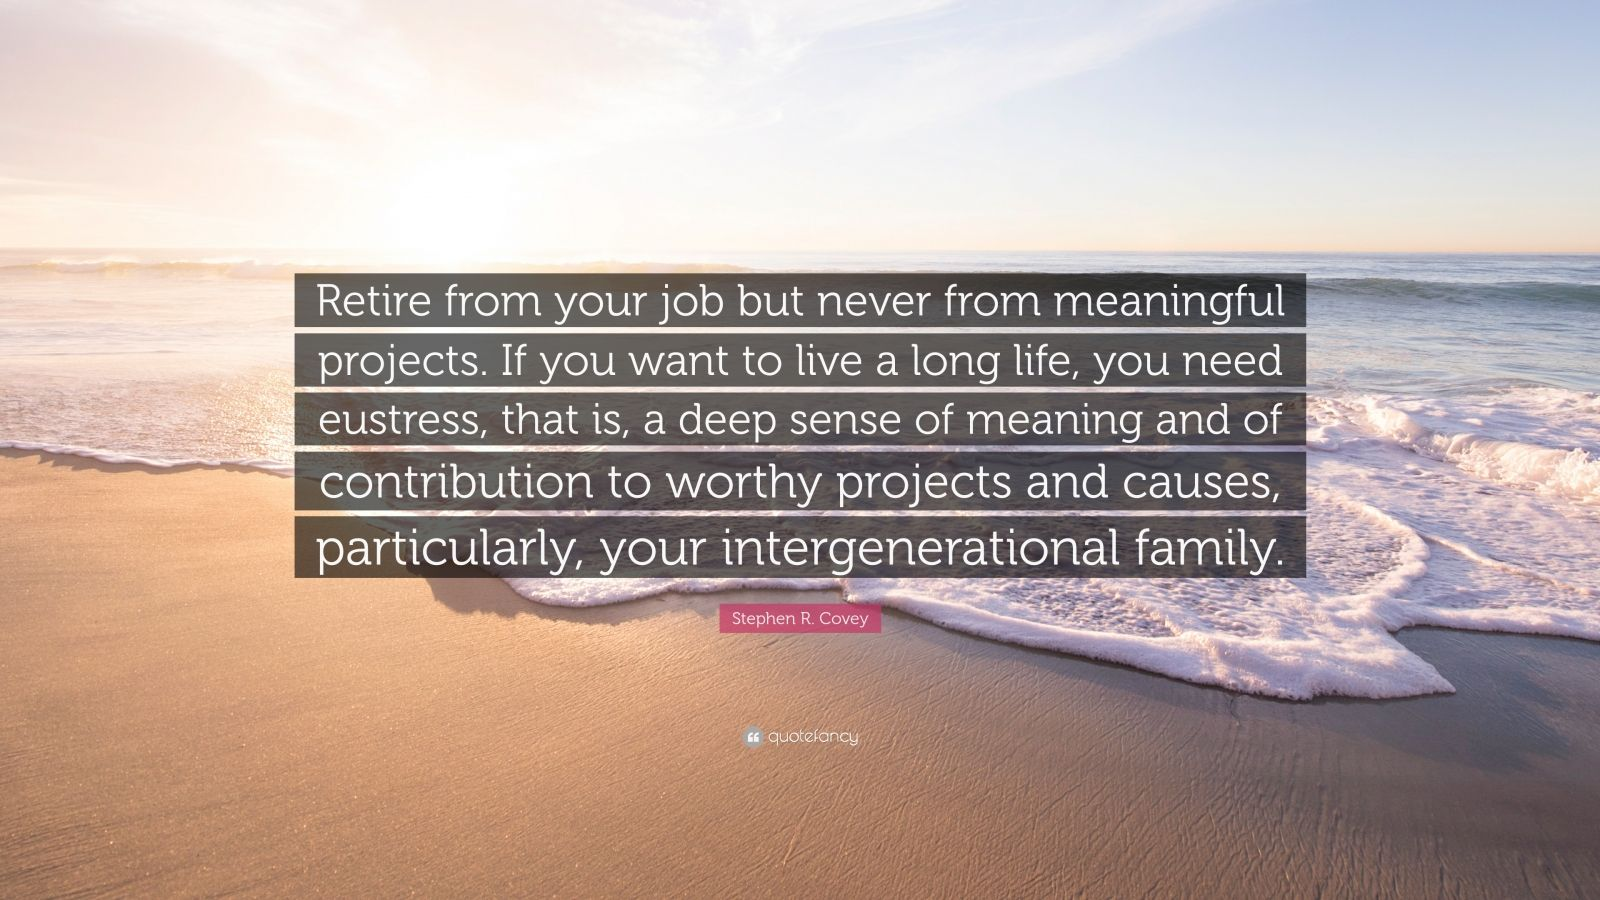 "Stephen R. Covey Quote: ""Retire from your job but never from meaningful projects. If you want to live a long life, you need eustress, that is, a deep sense of meaning and of contribution to worthy projects and causes, particularly, your intergenerational family."""